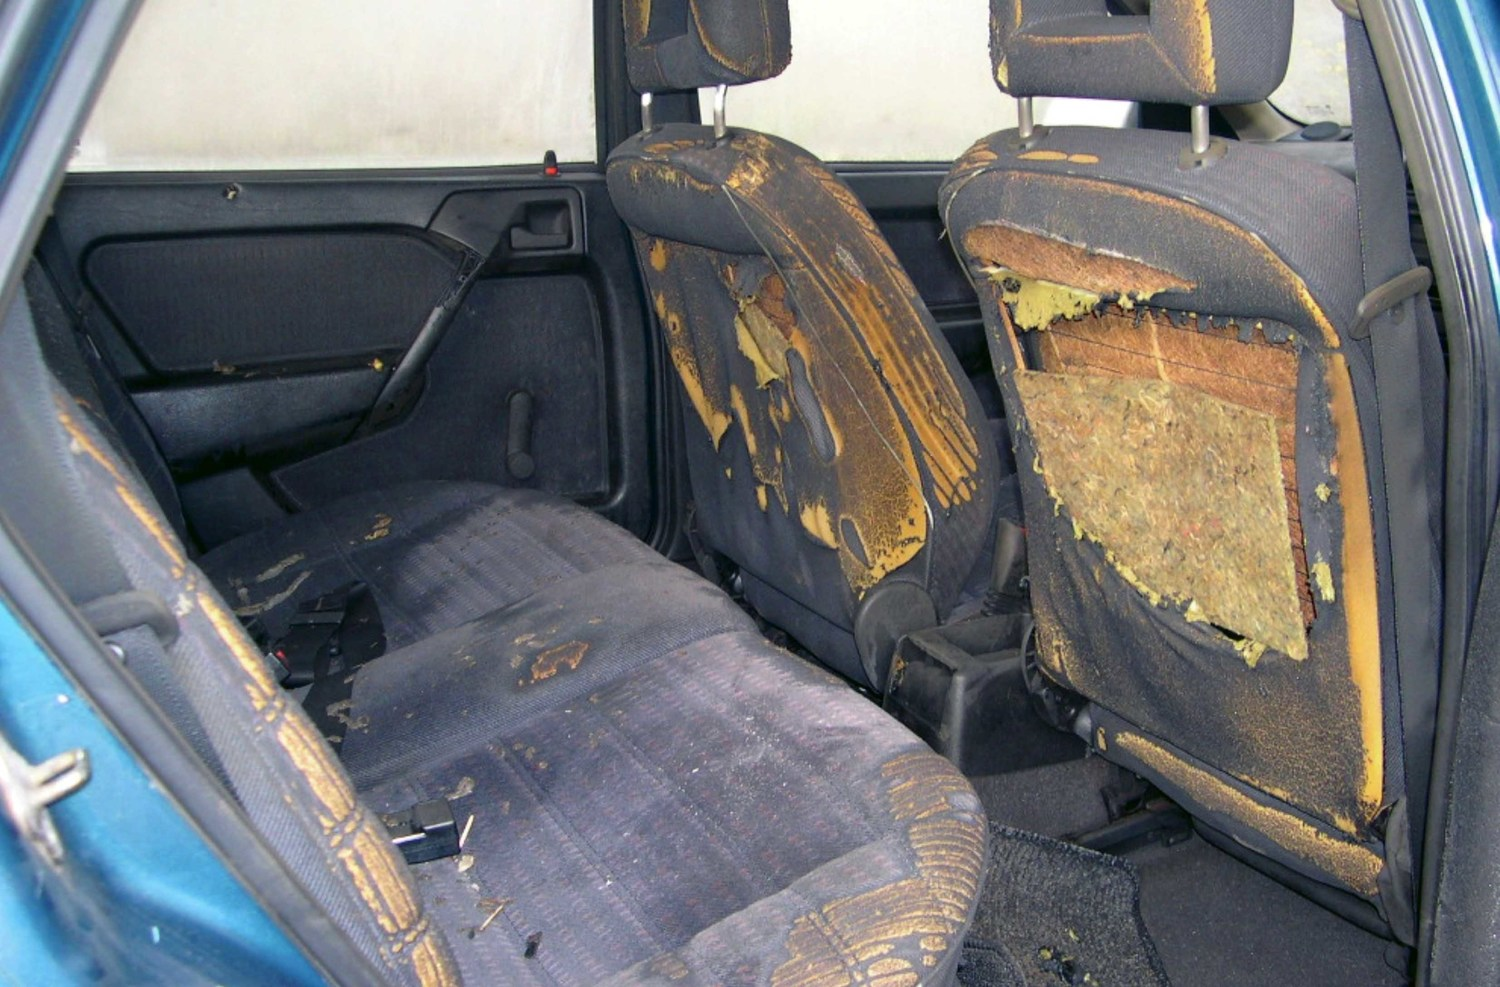 Matchsticks visible on the back seat of the killers' getaway car